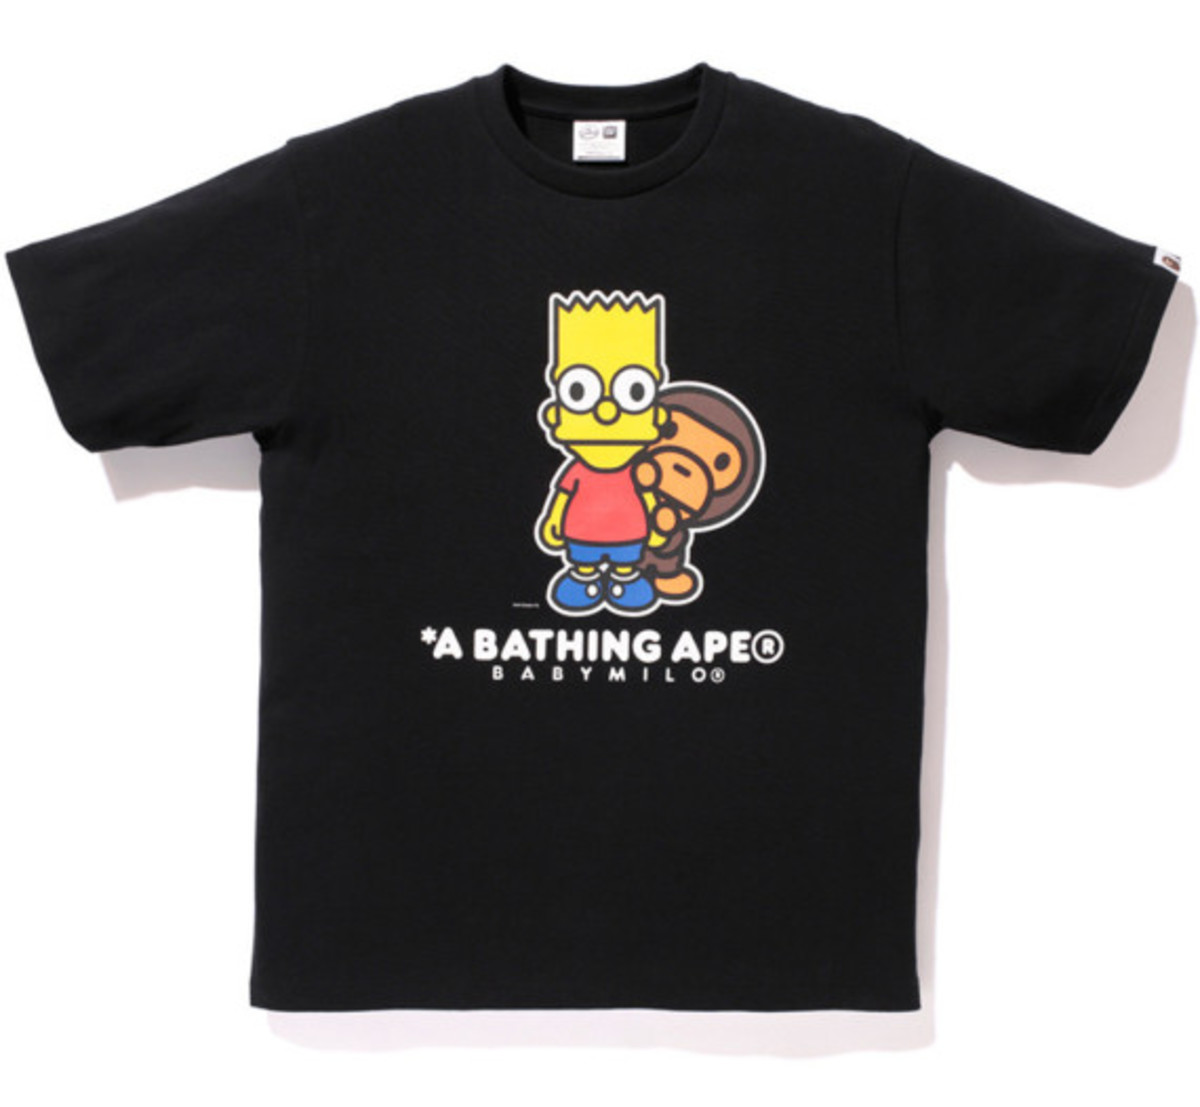 the-simpsons-bape-collection-available-14